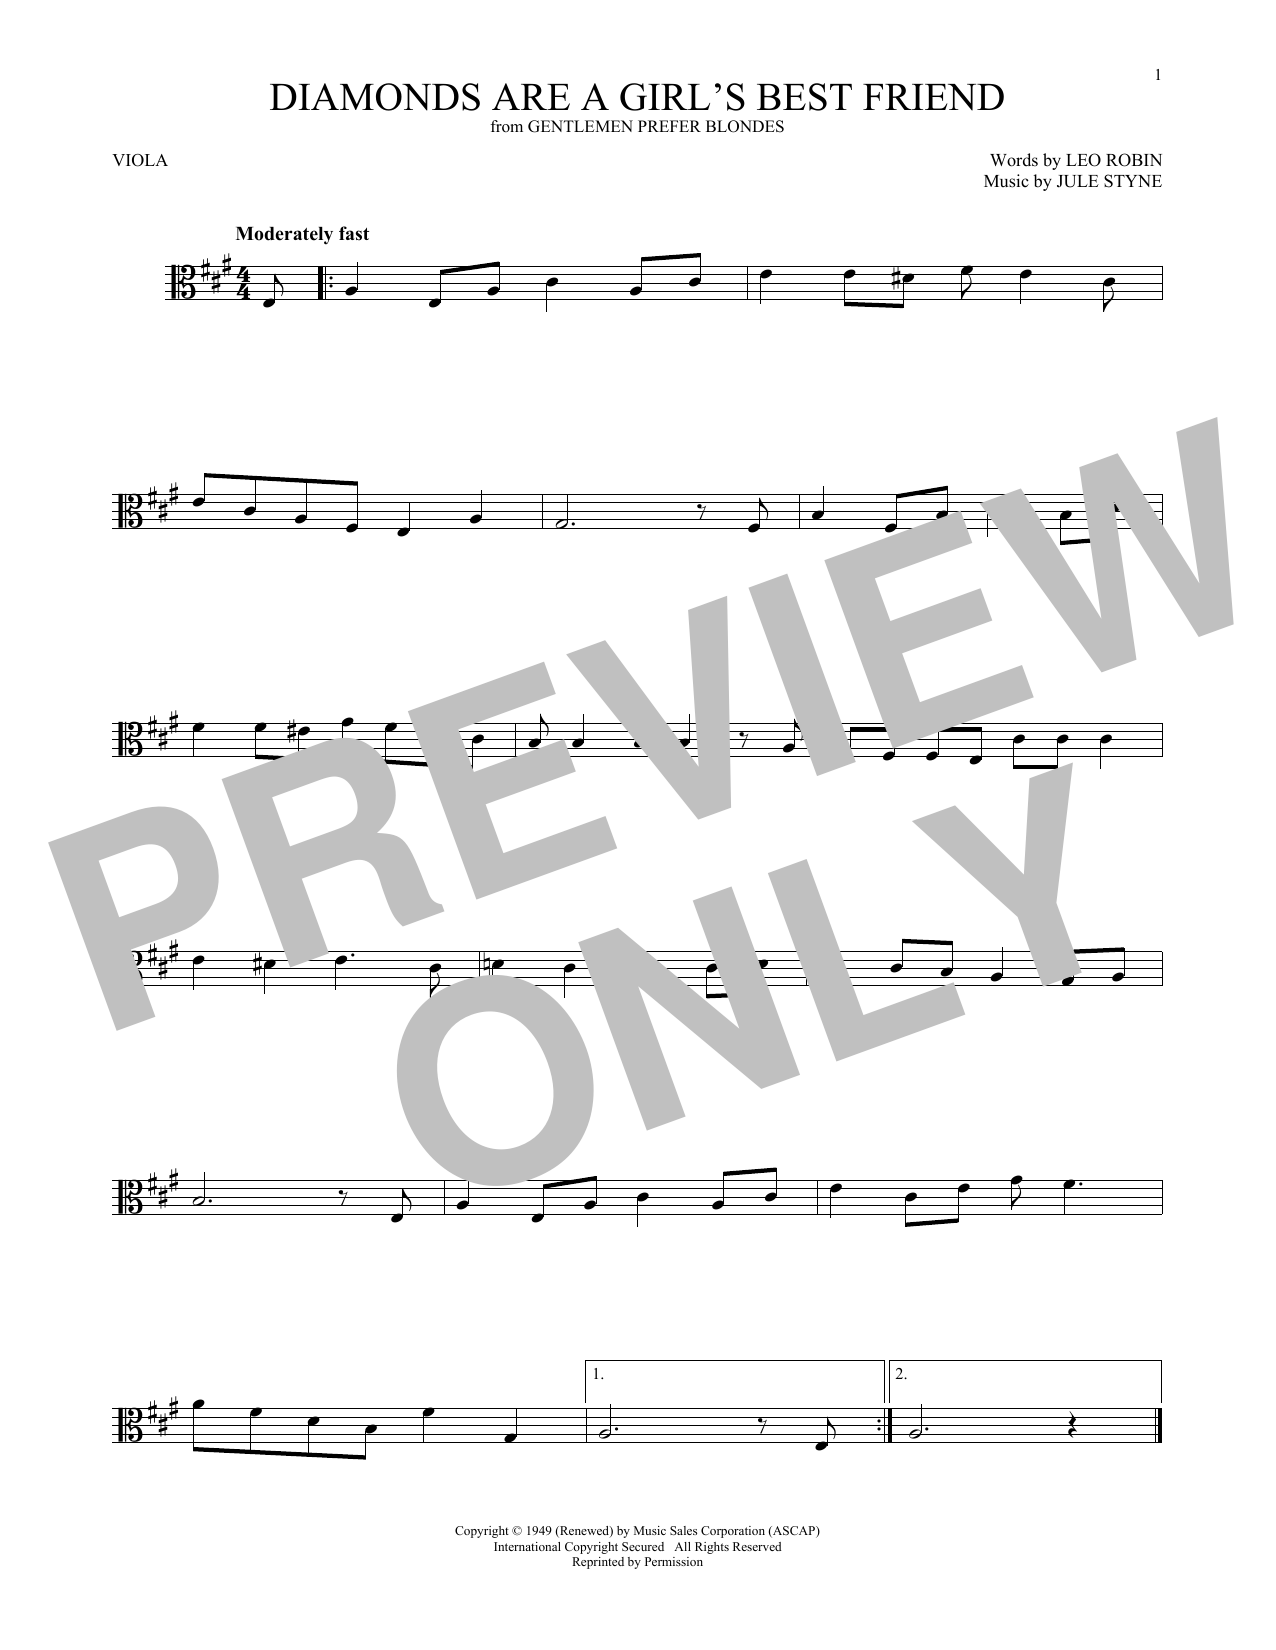 Jule Styne Diamonds Are A Girl's Best Friend sheet music notes and chords. Download Printable PDF.